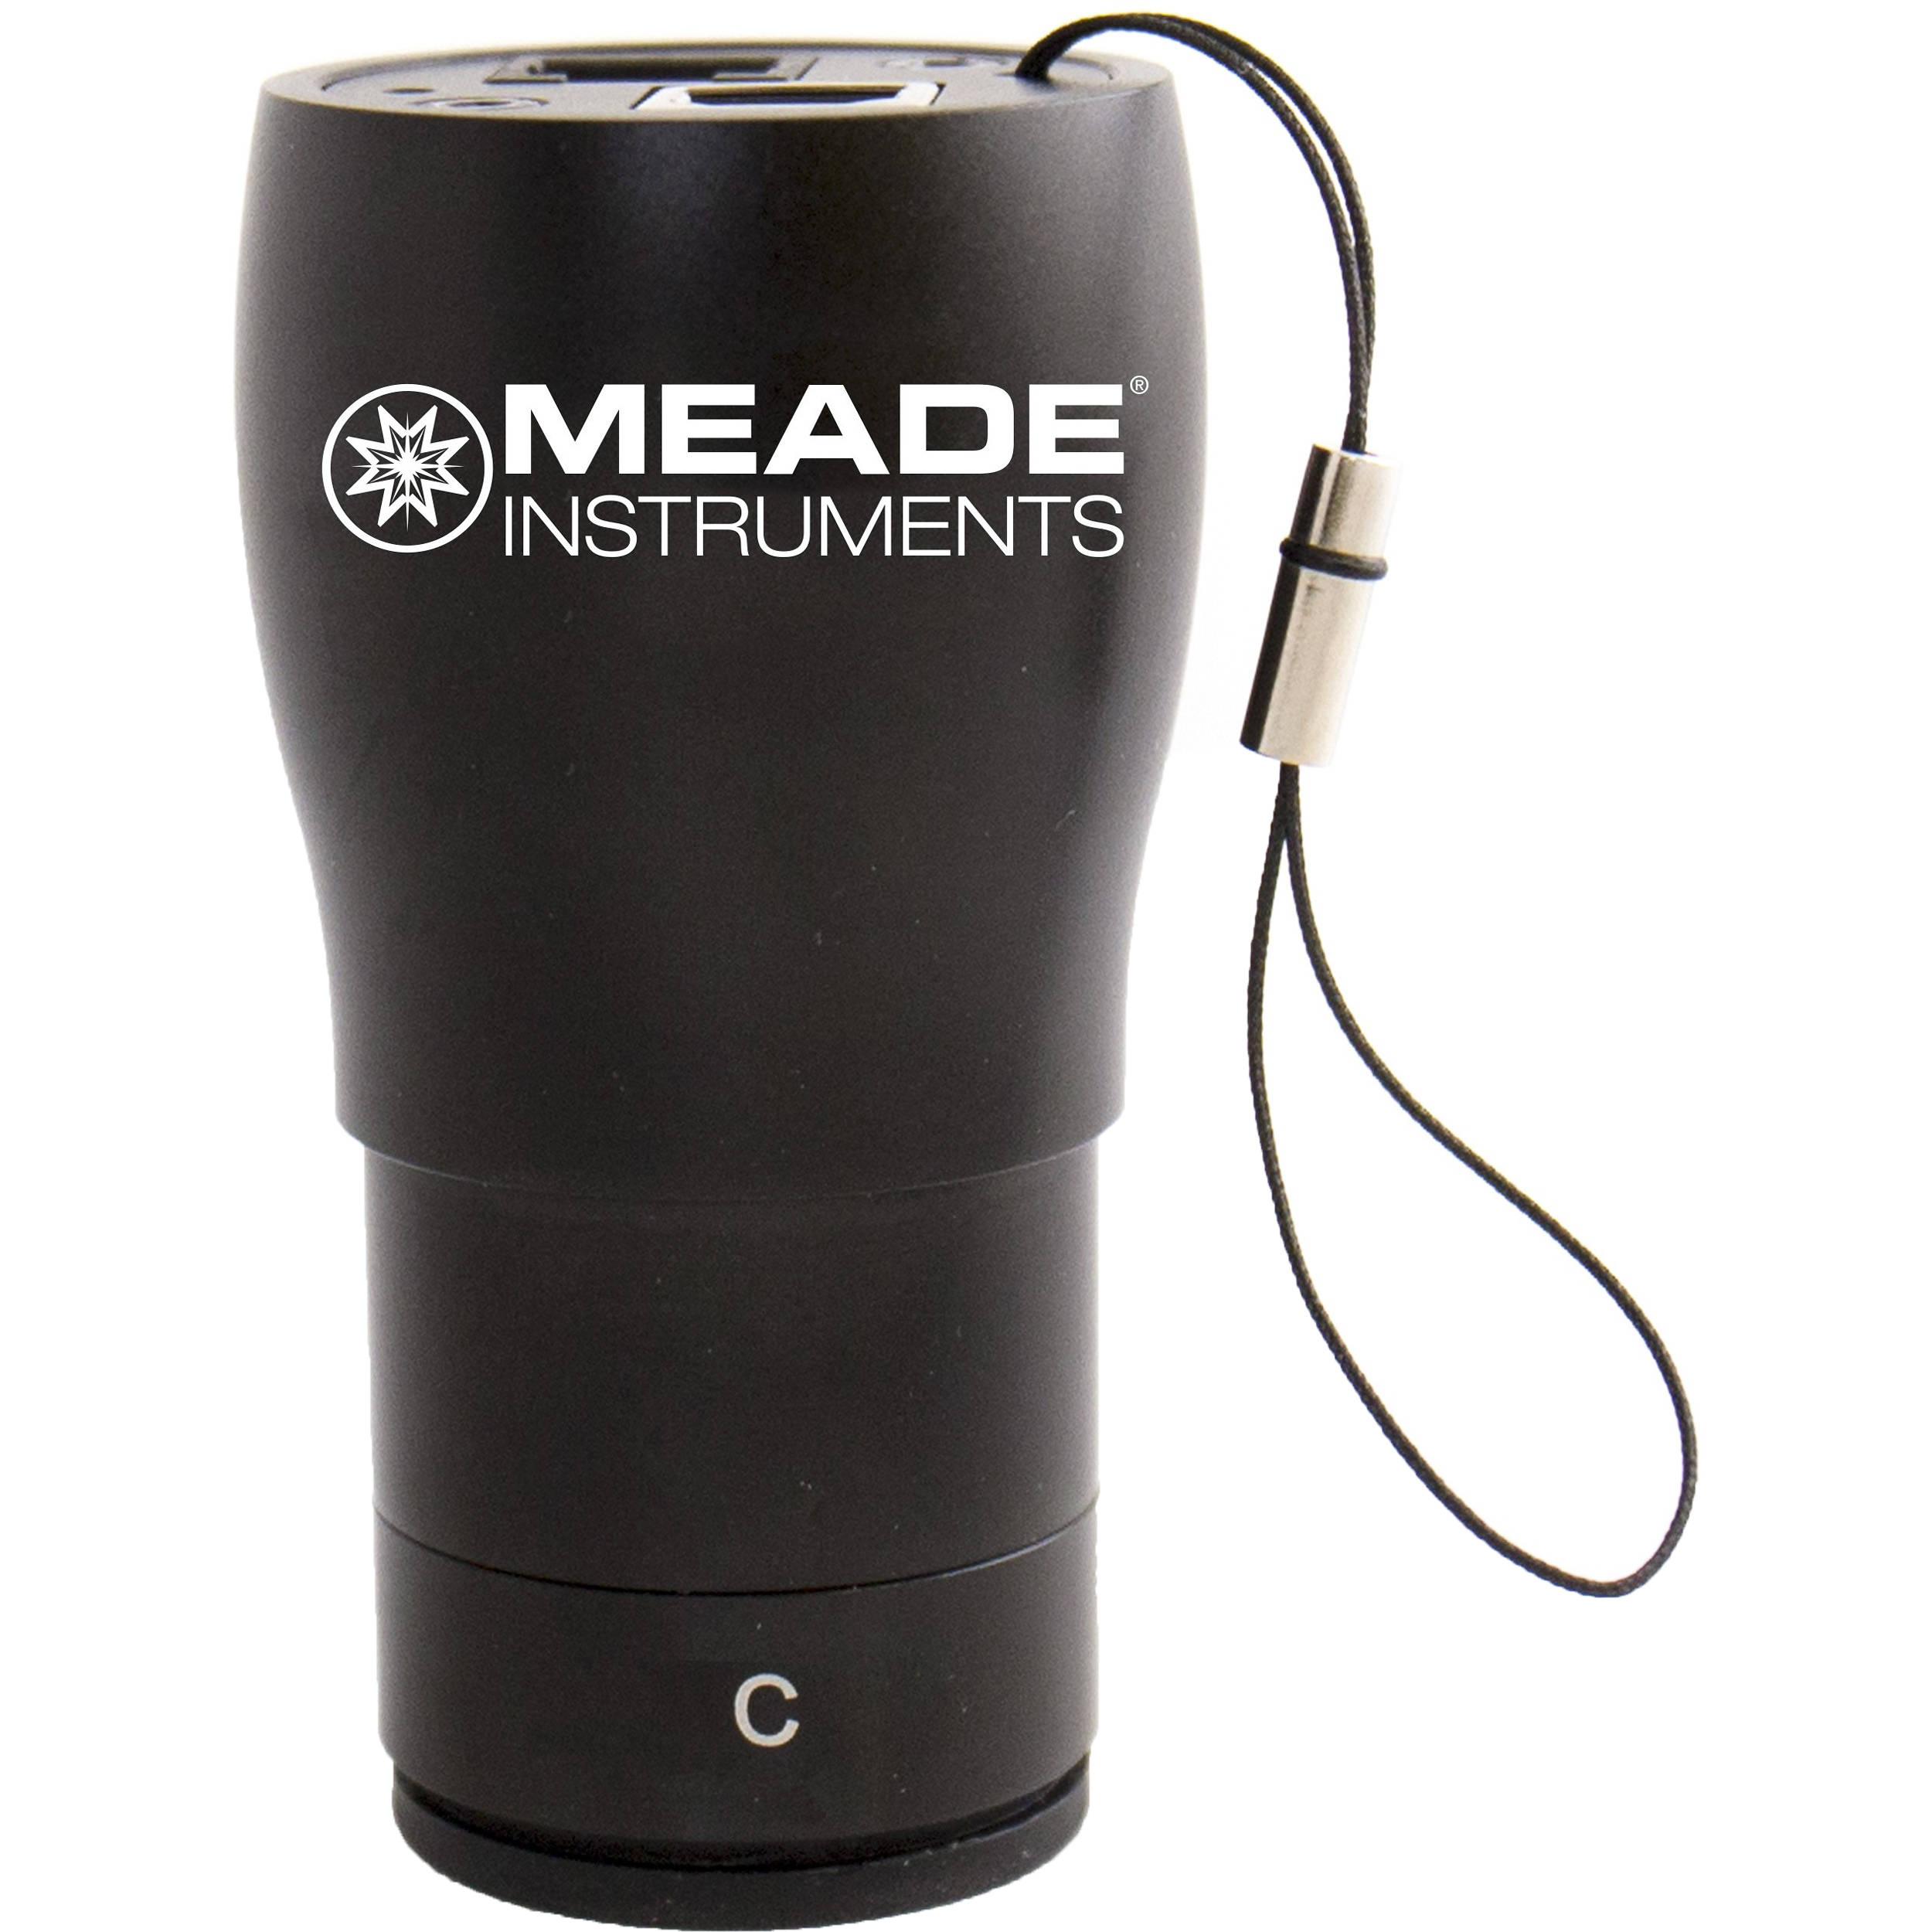 Meade LPI-GM Autoguiding and Imaging Eyepiece Camera (Monochrome)